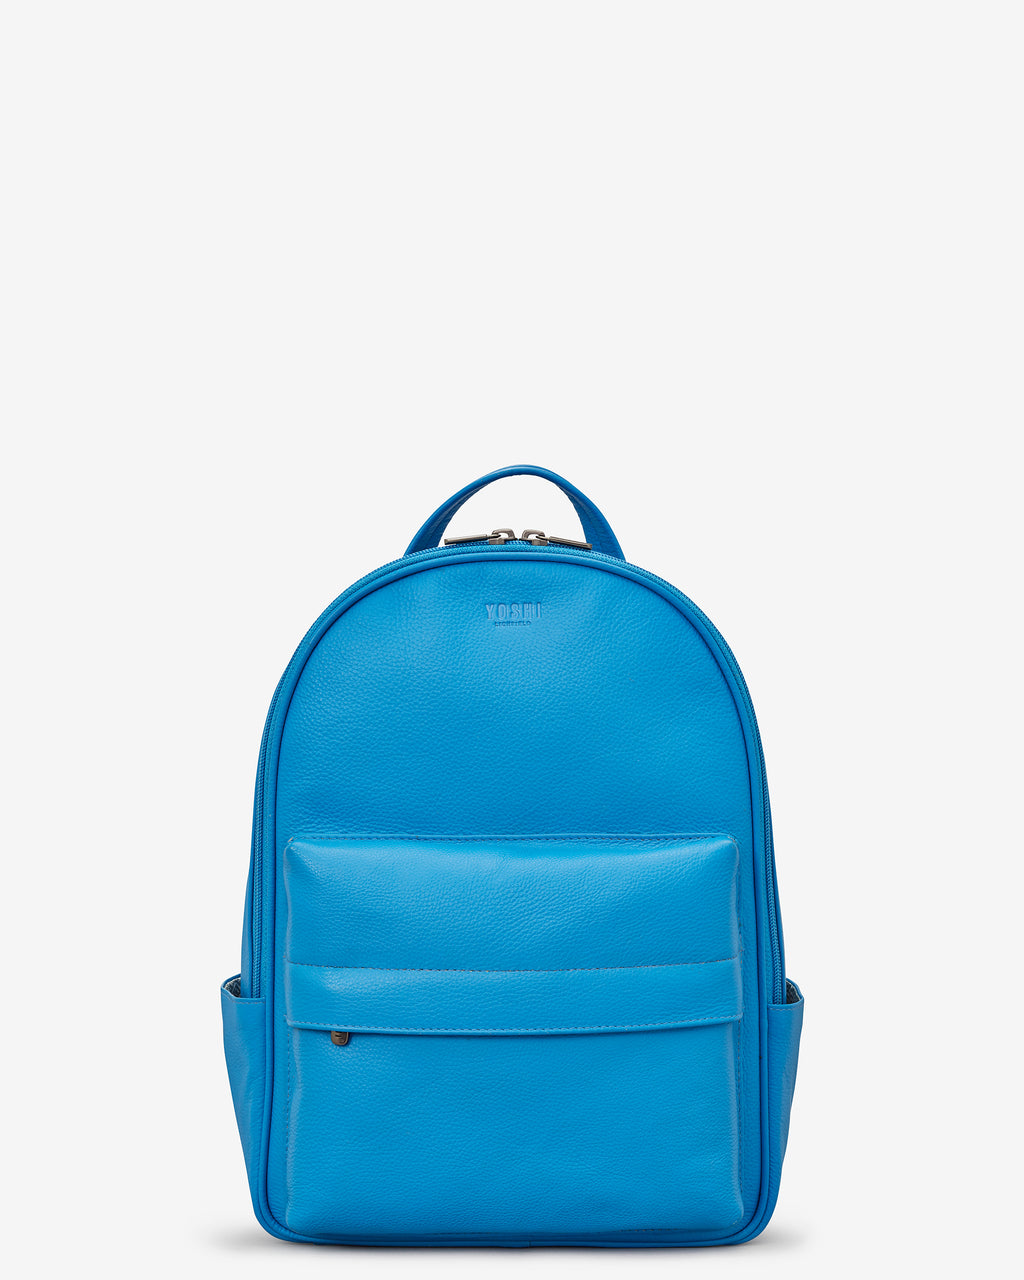 Mercer Leather Backpack